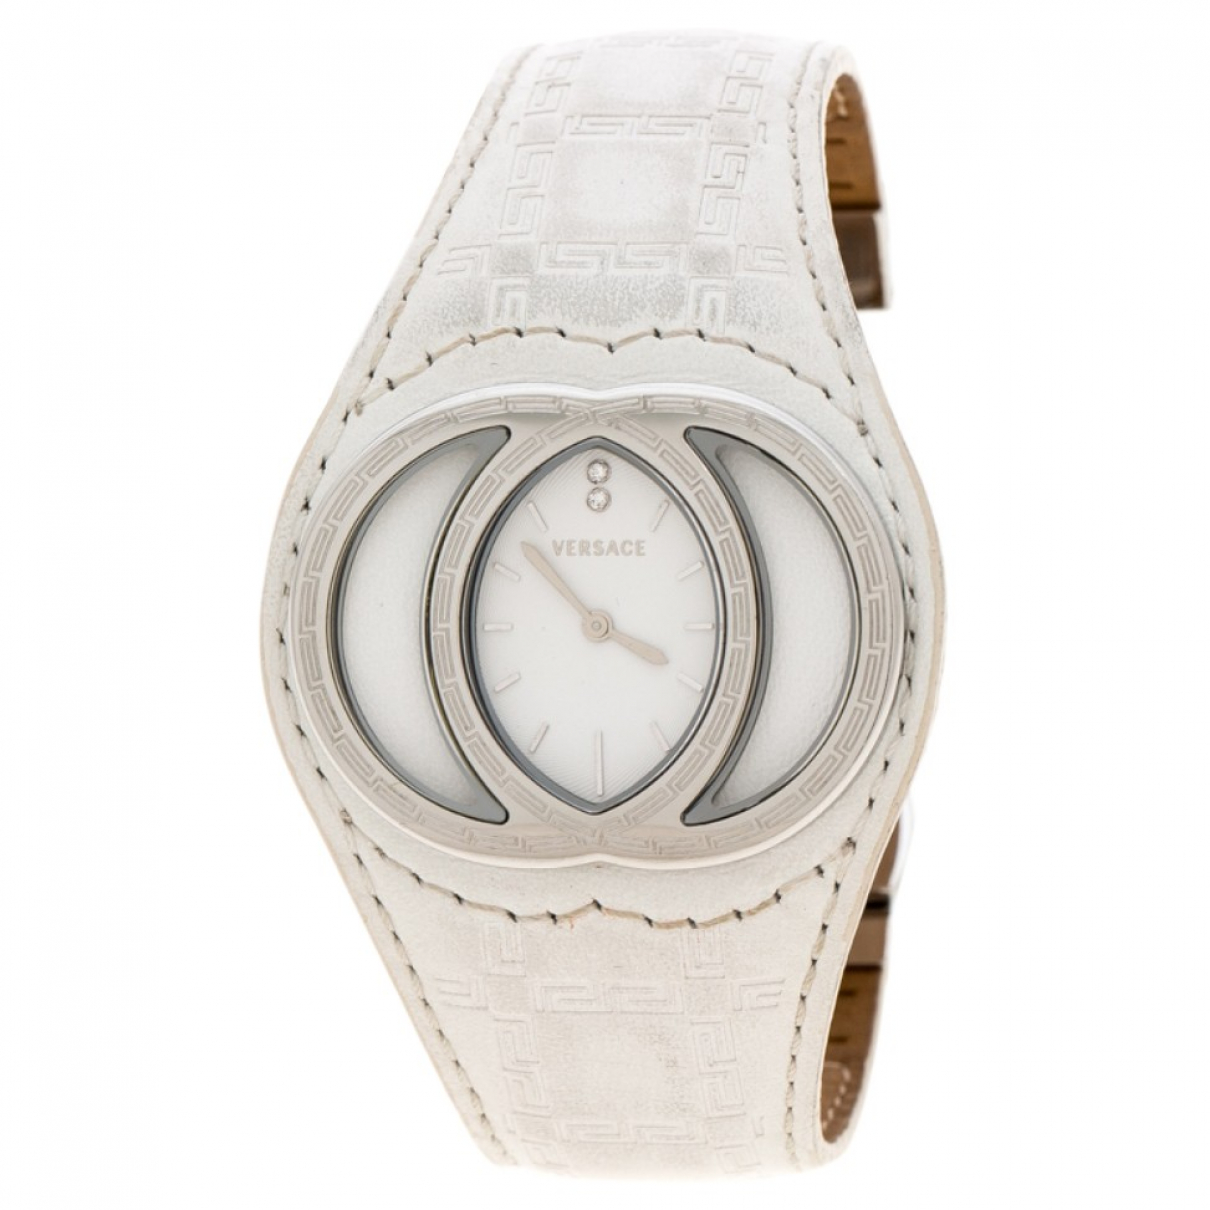 Versace \N White Steel watch for Women \N